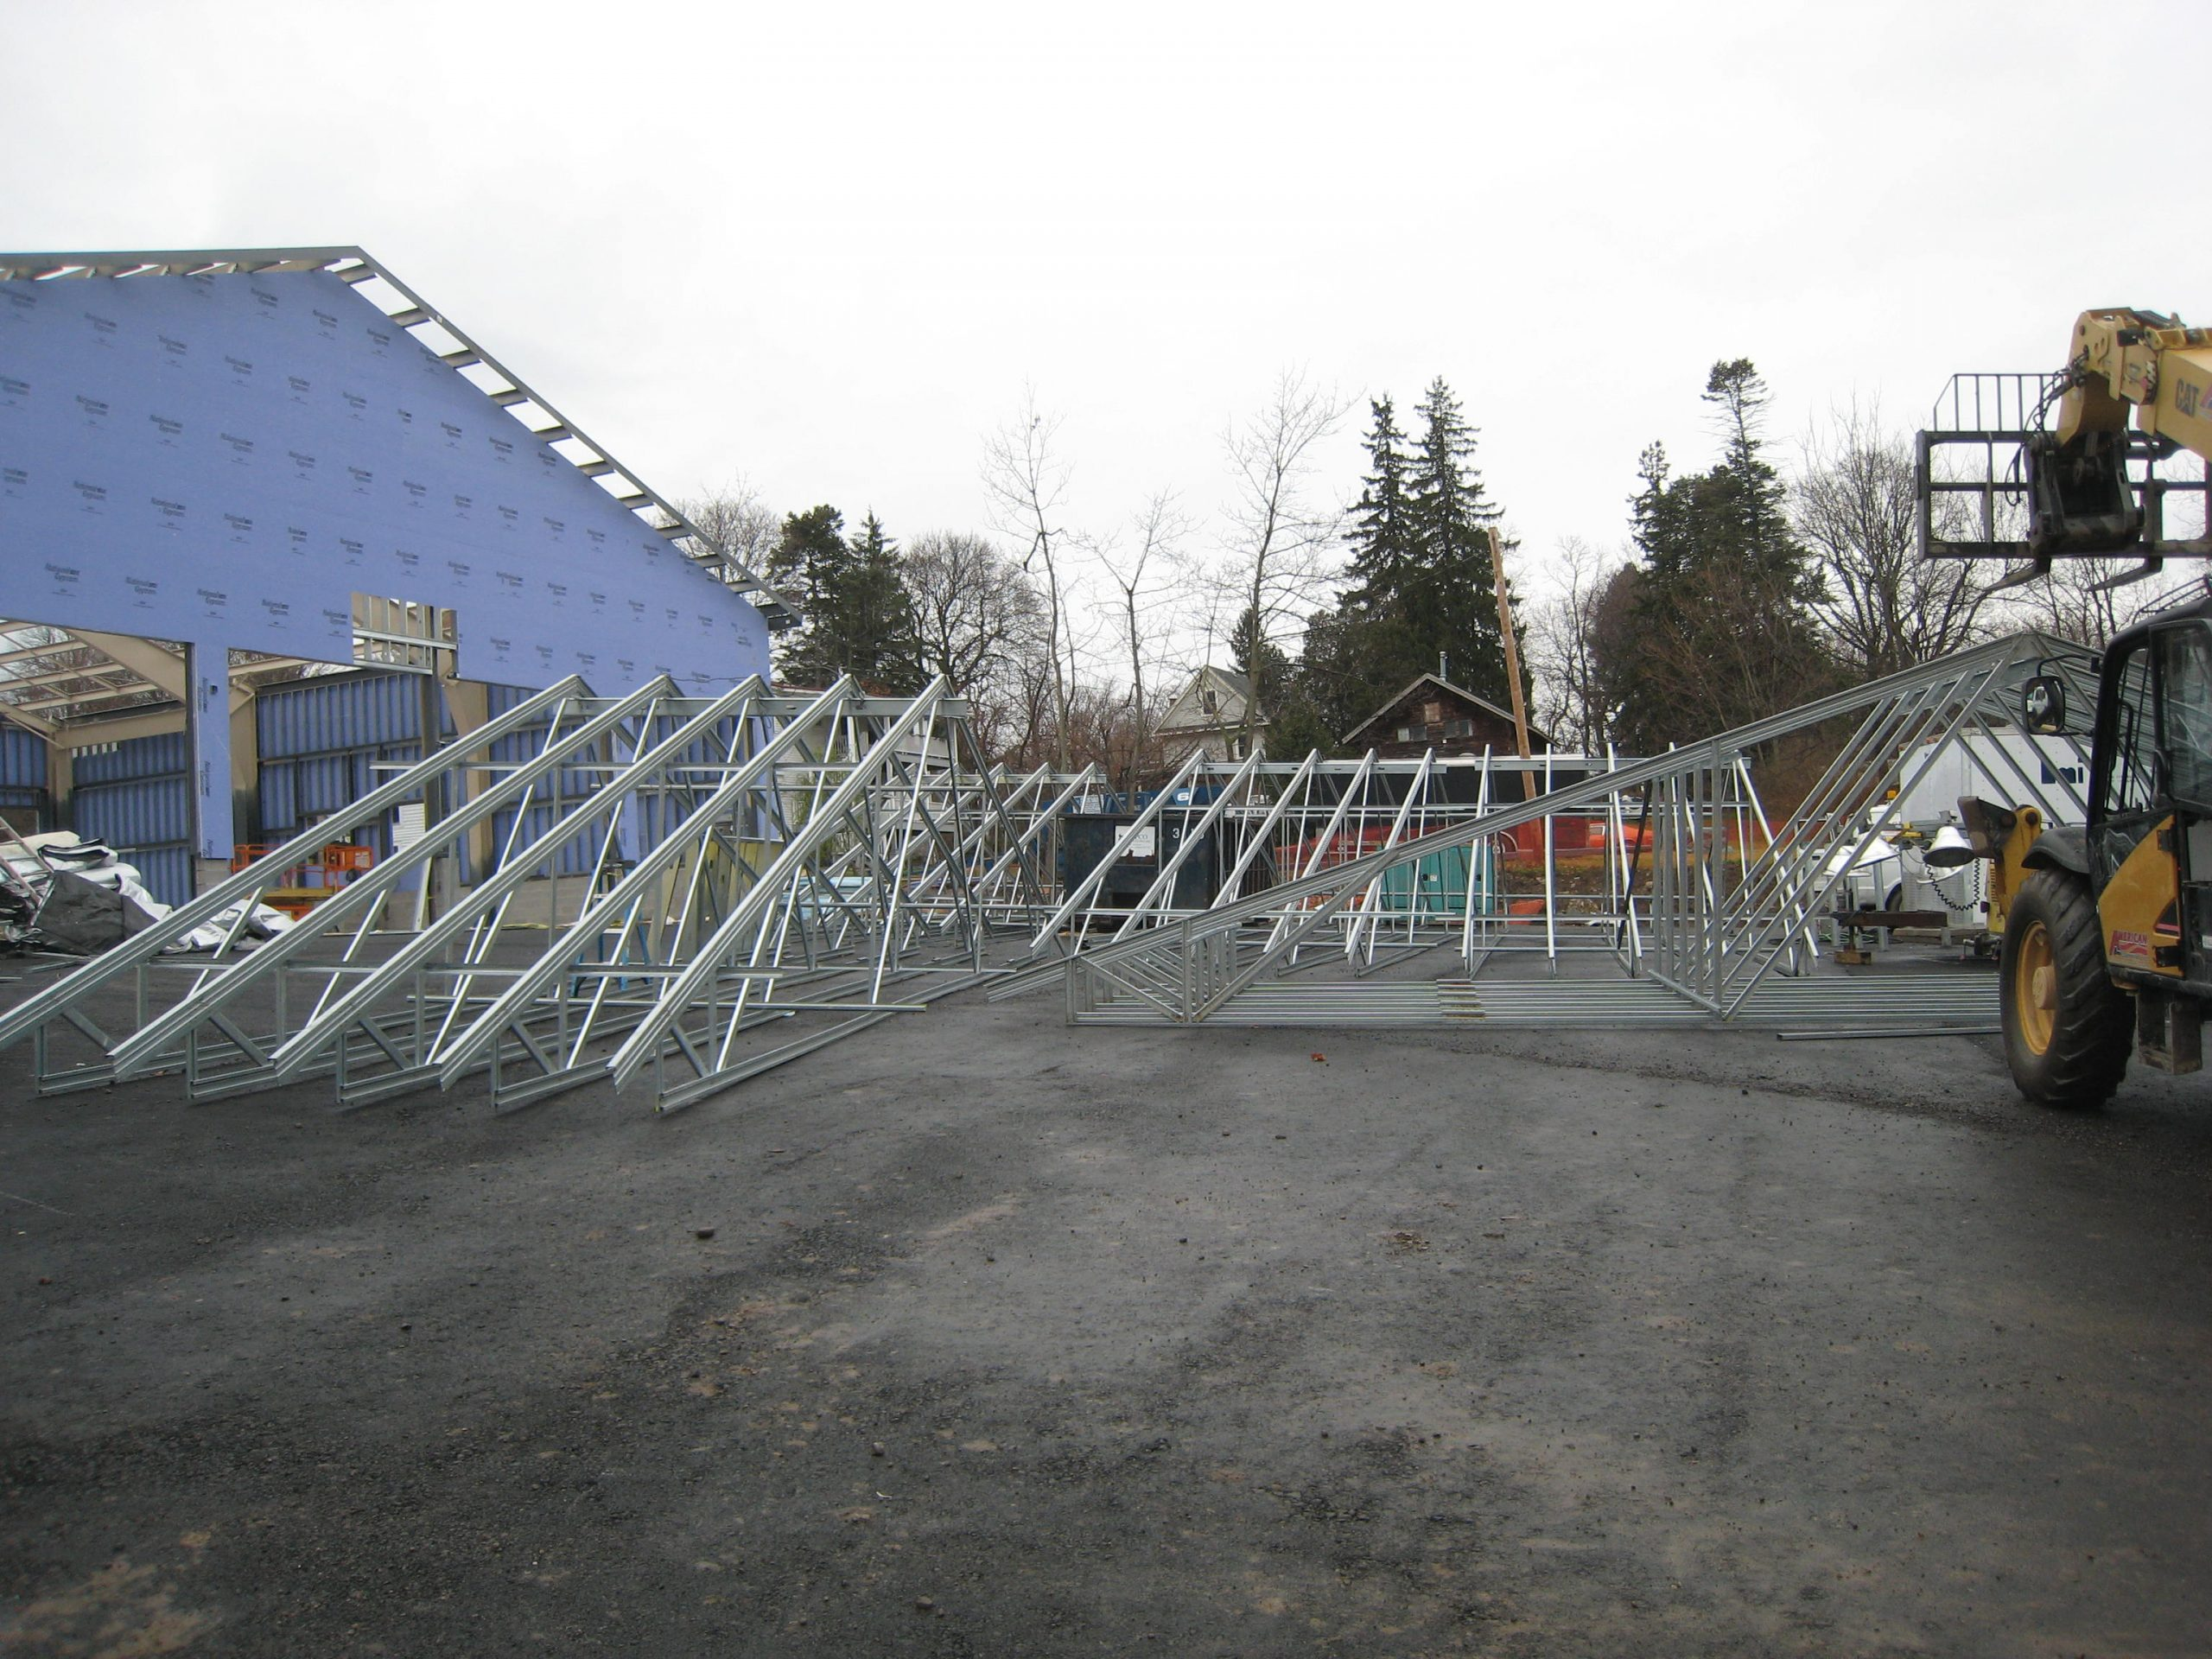 light gauge steel trusses and architectural framing being moved by forklift